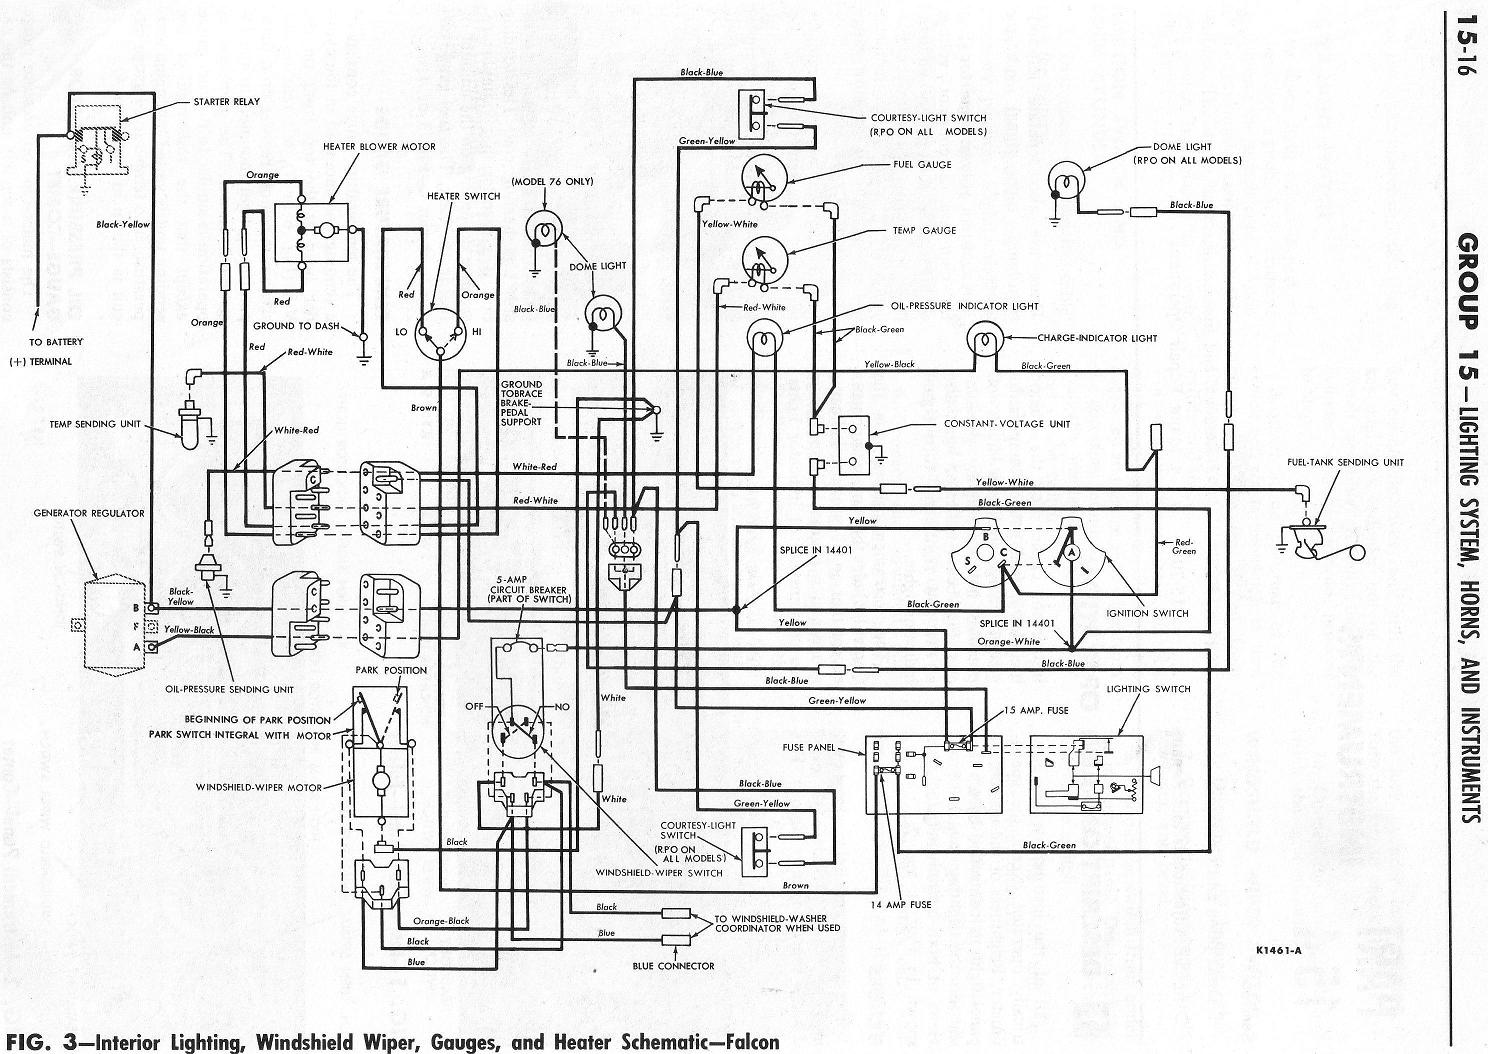 Awe Inspiring Wiring Diagram Together With 1964 Ford Falcon Wiring Diagram Further Zipur Mohammedshrine Wiring Diagrams Zipurmohammedshrineorg